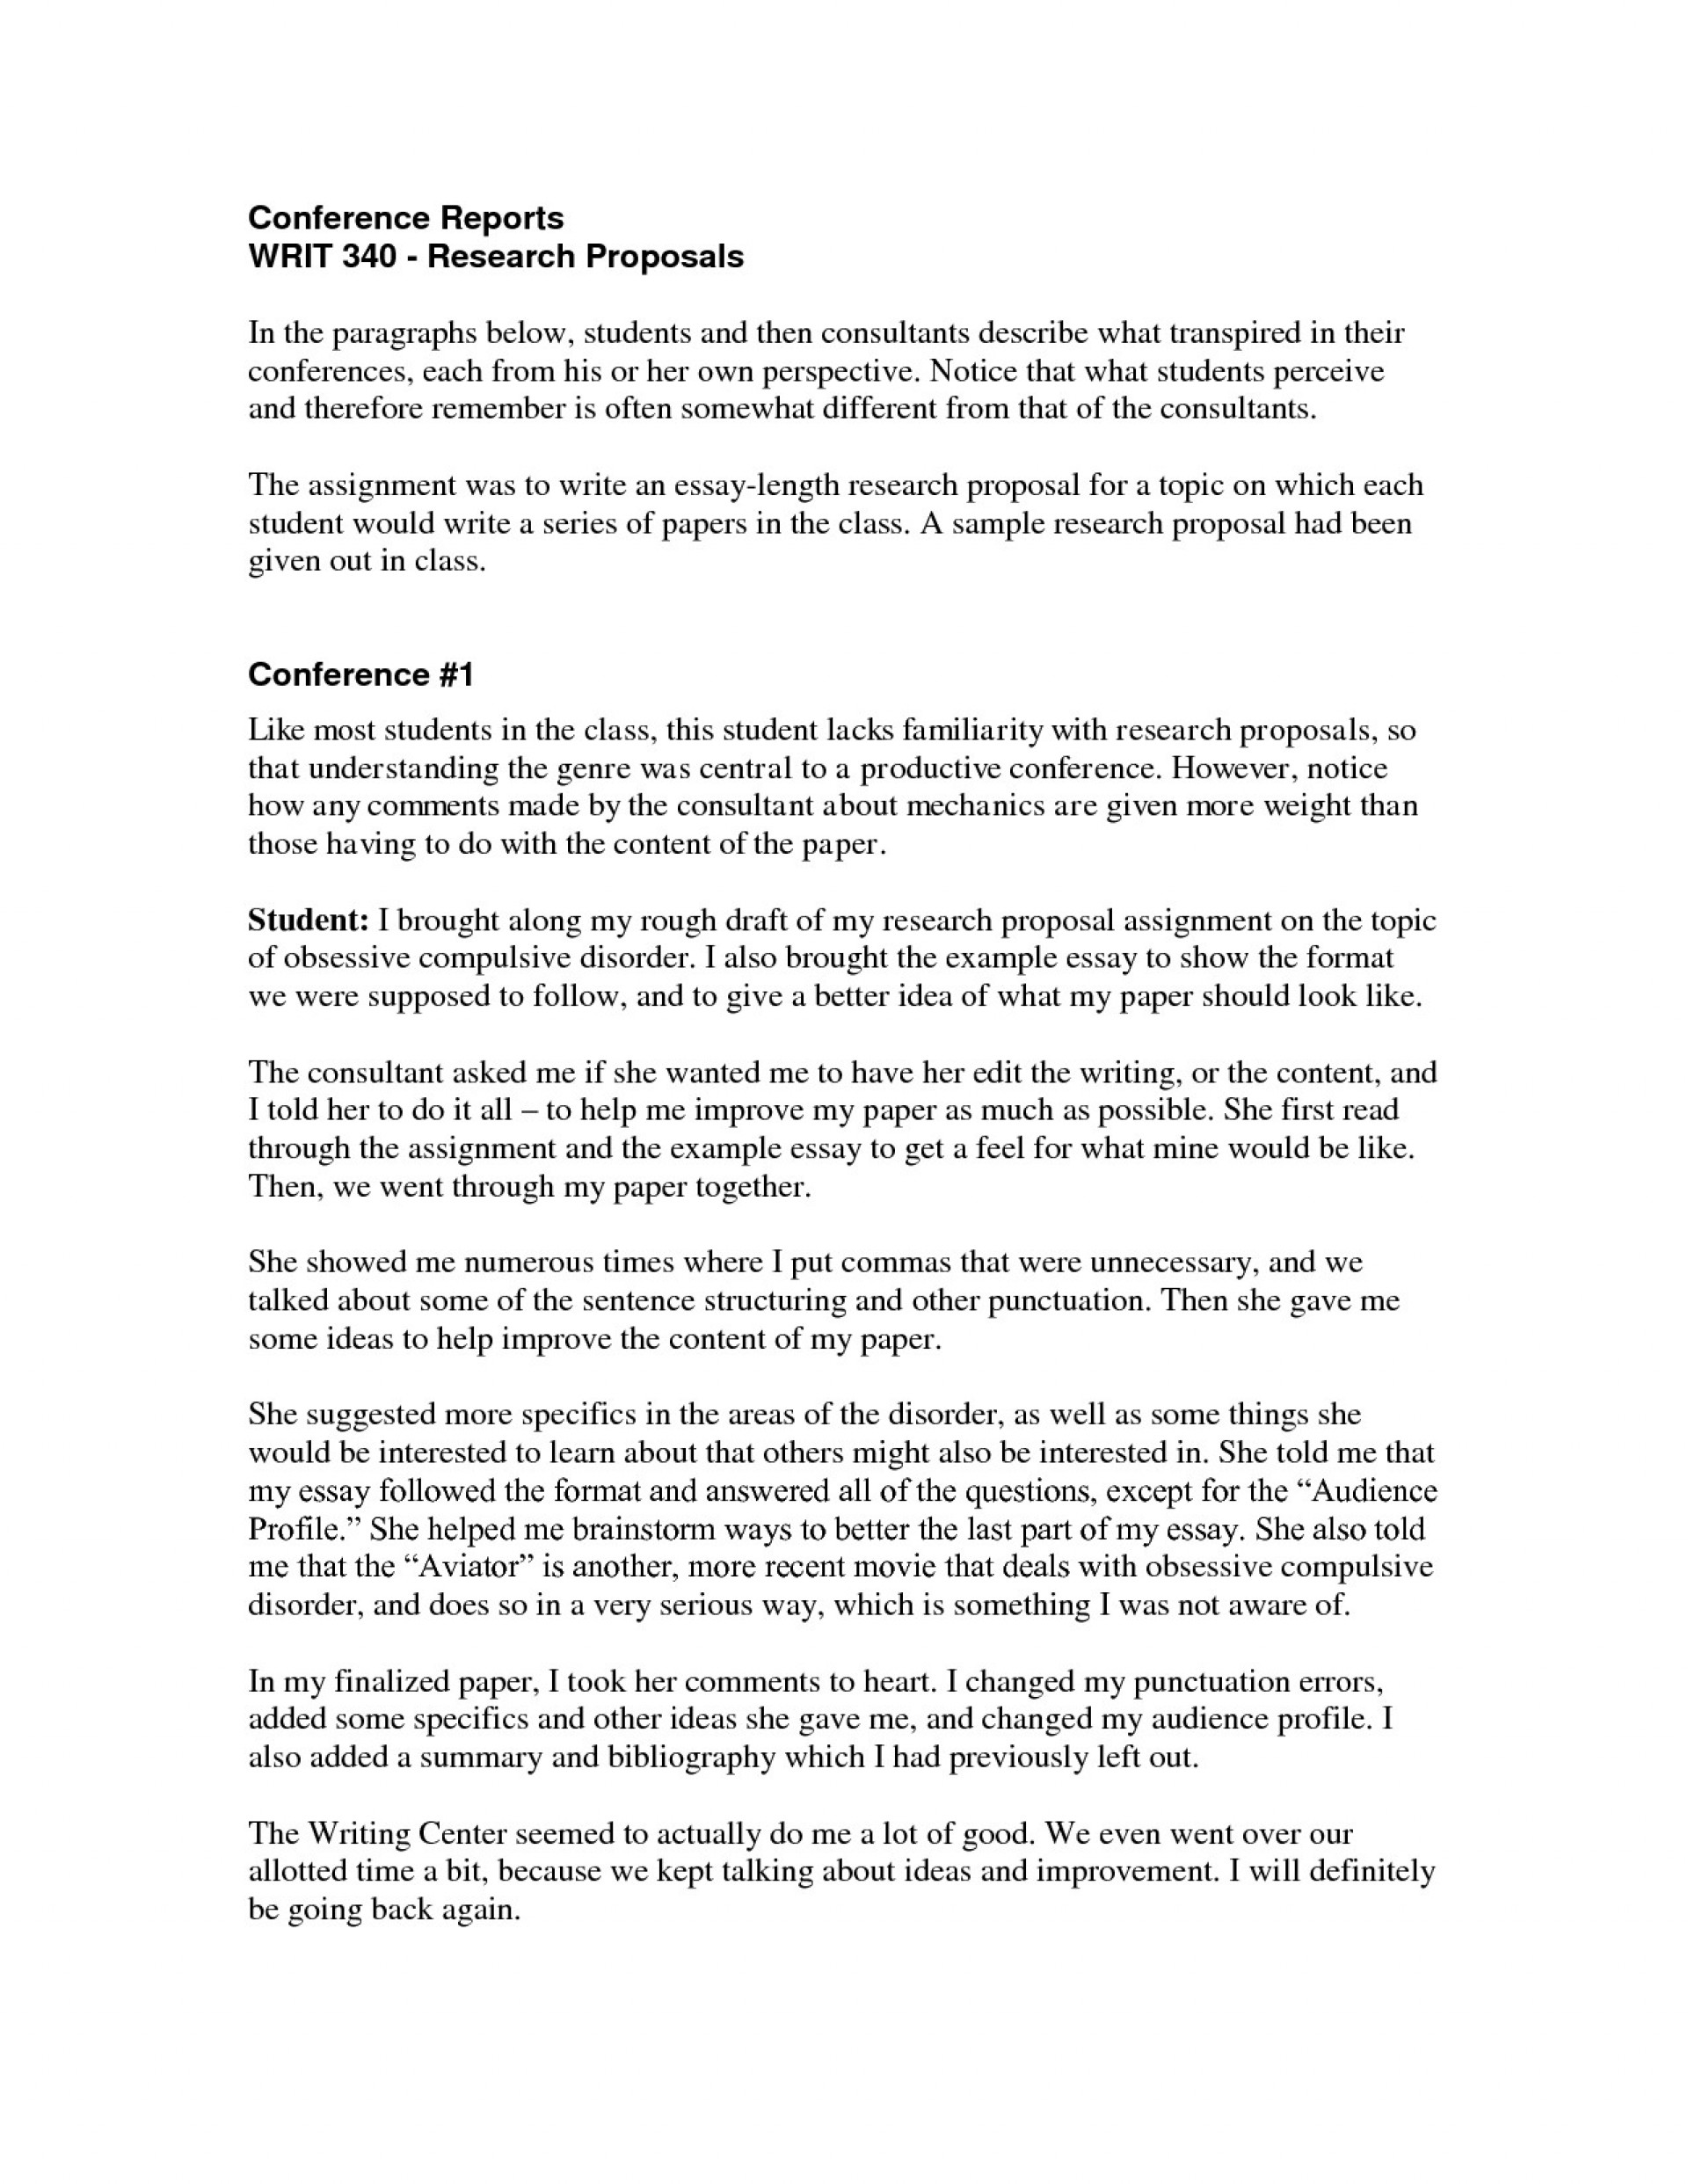 028 Apa Research Paper Proposal Sample Letter Outstanding Format Generator Example Purdue Owl 1920